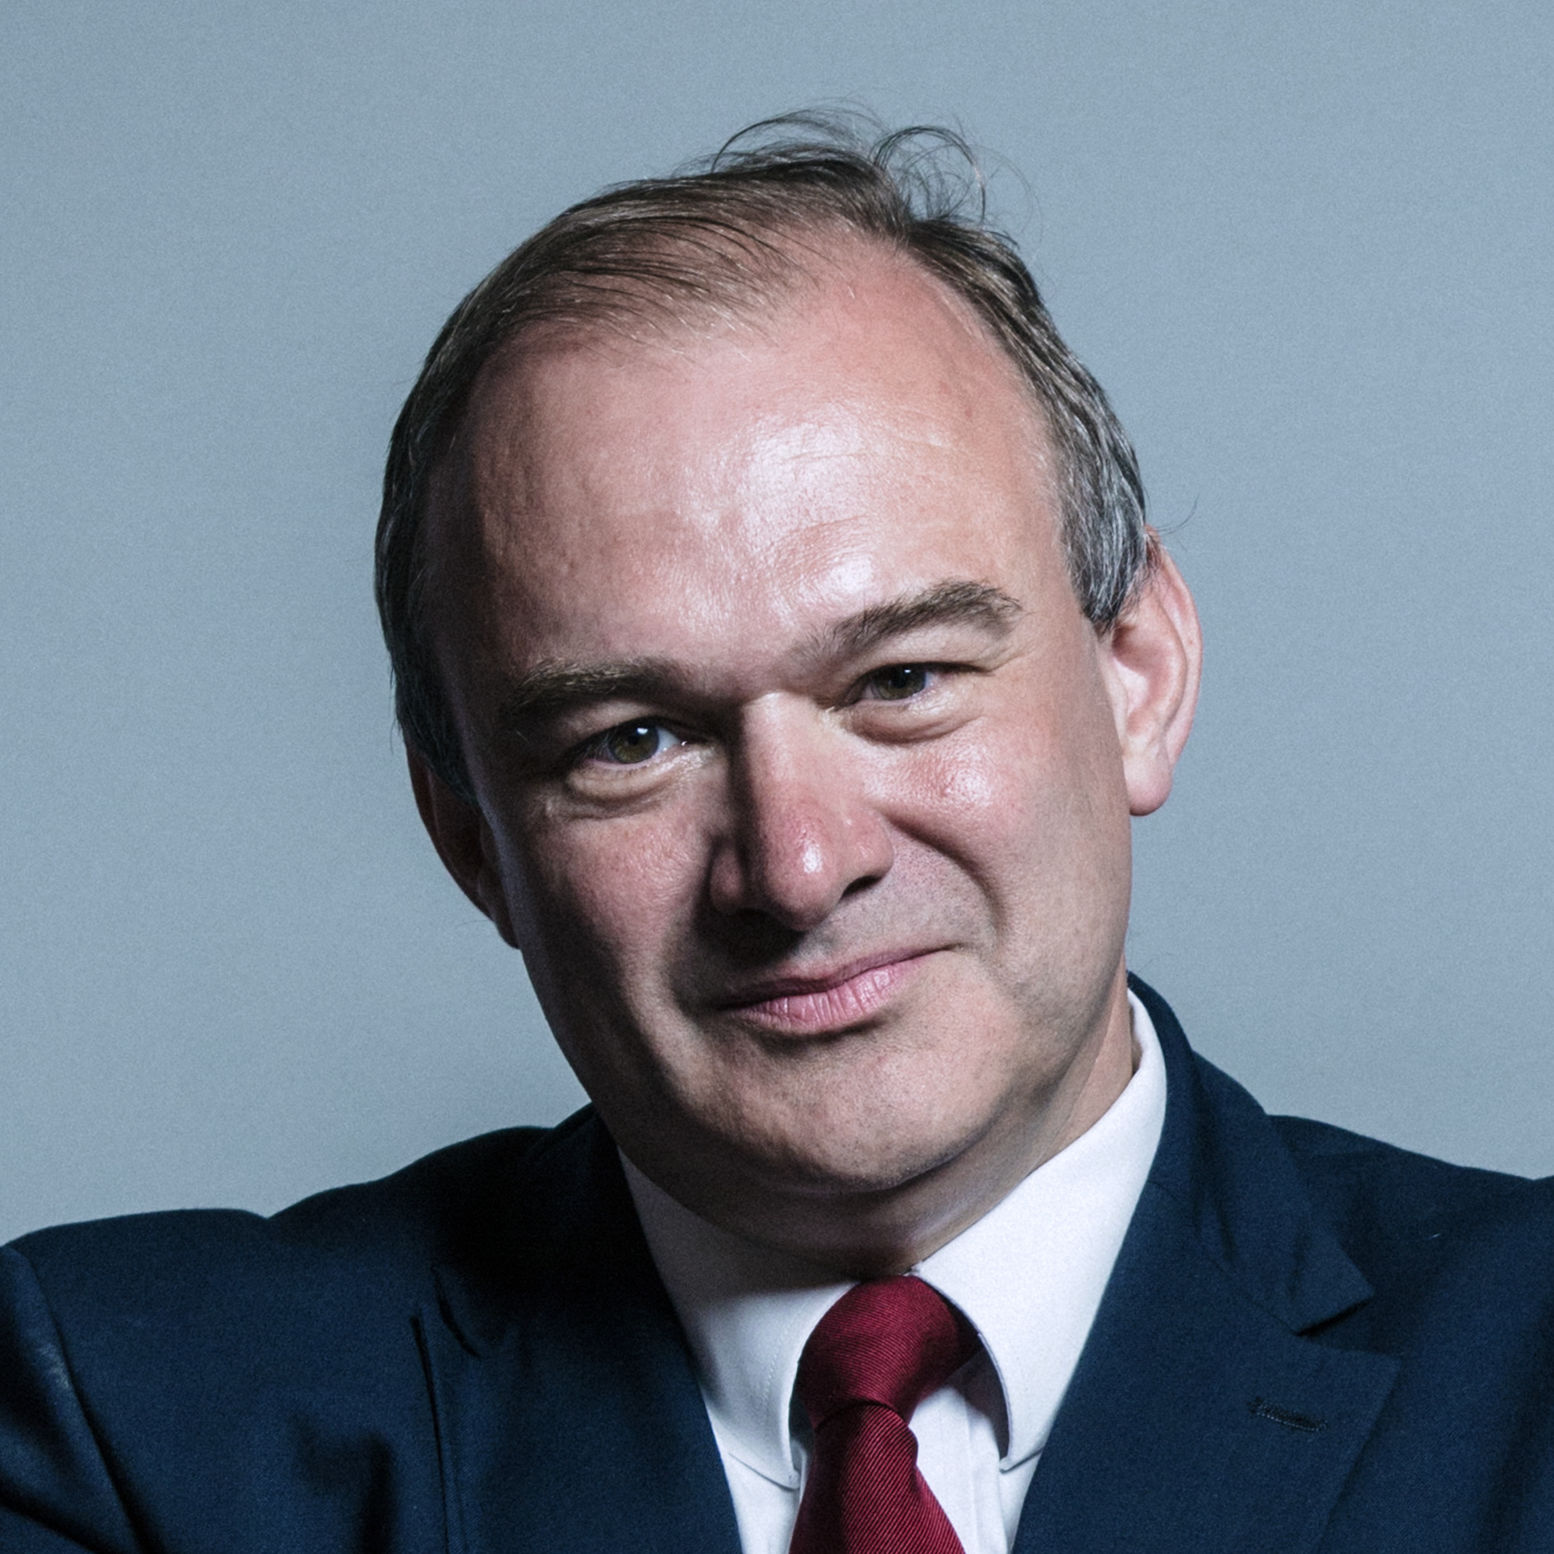 Sir Edward Davey Portrait